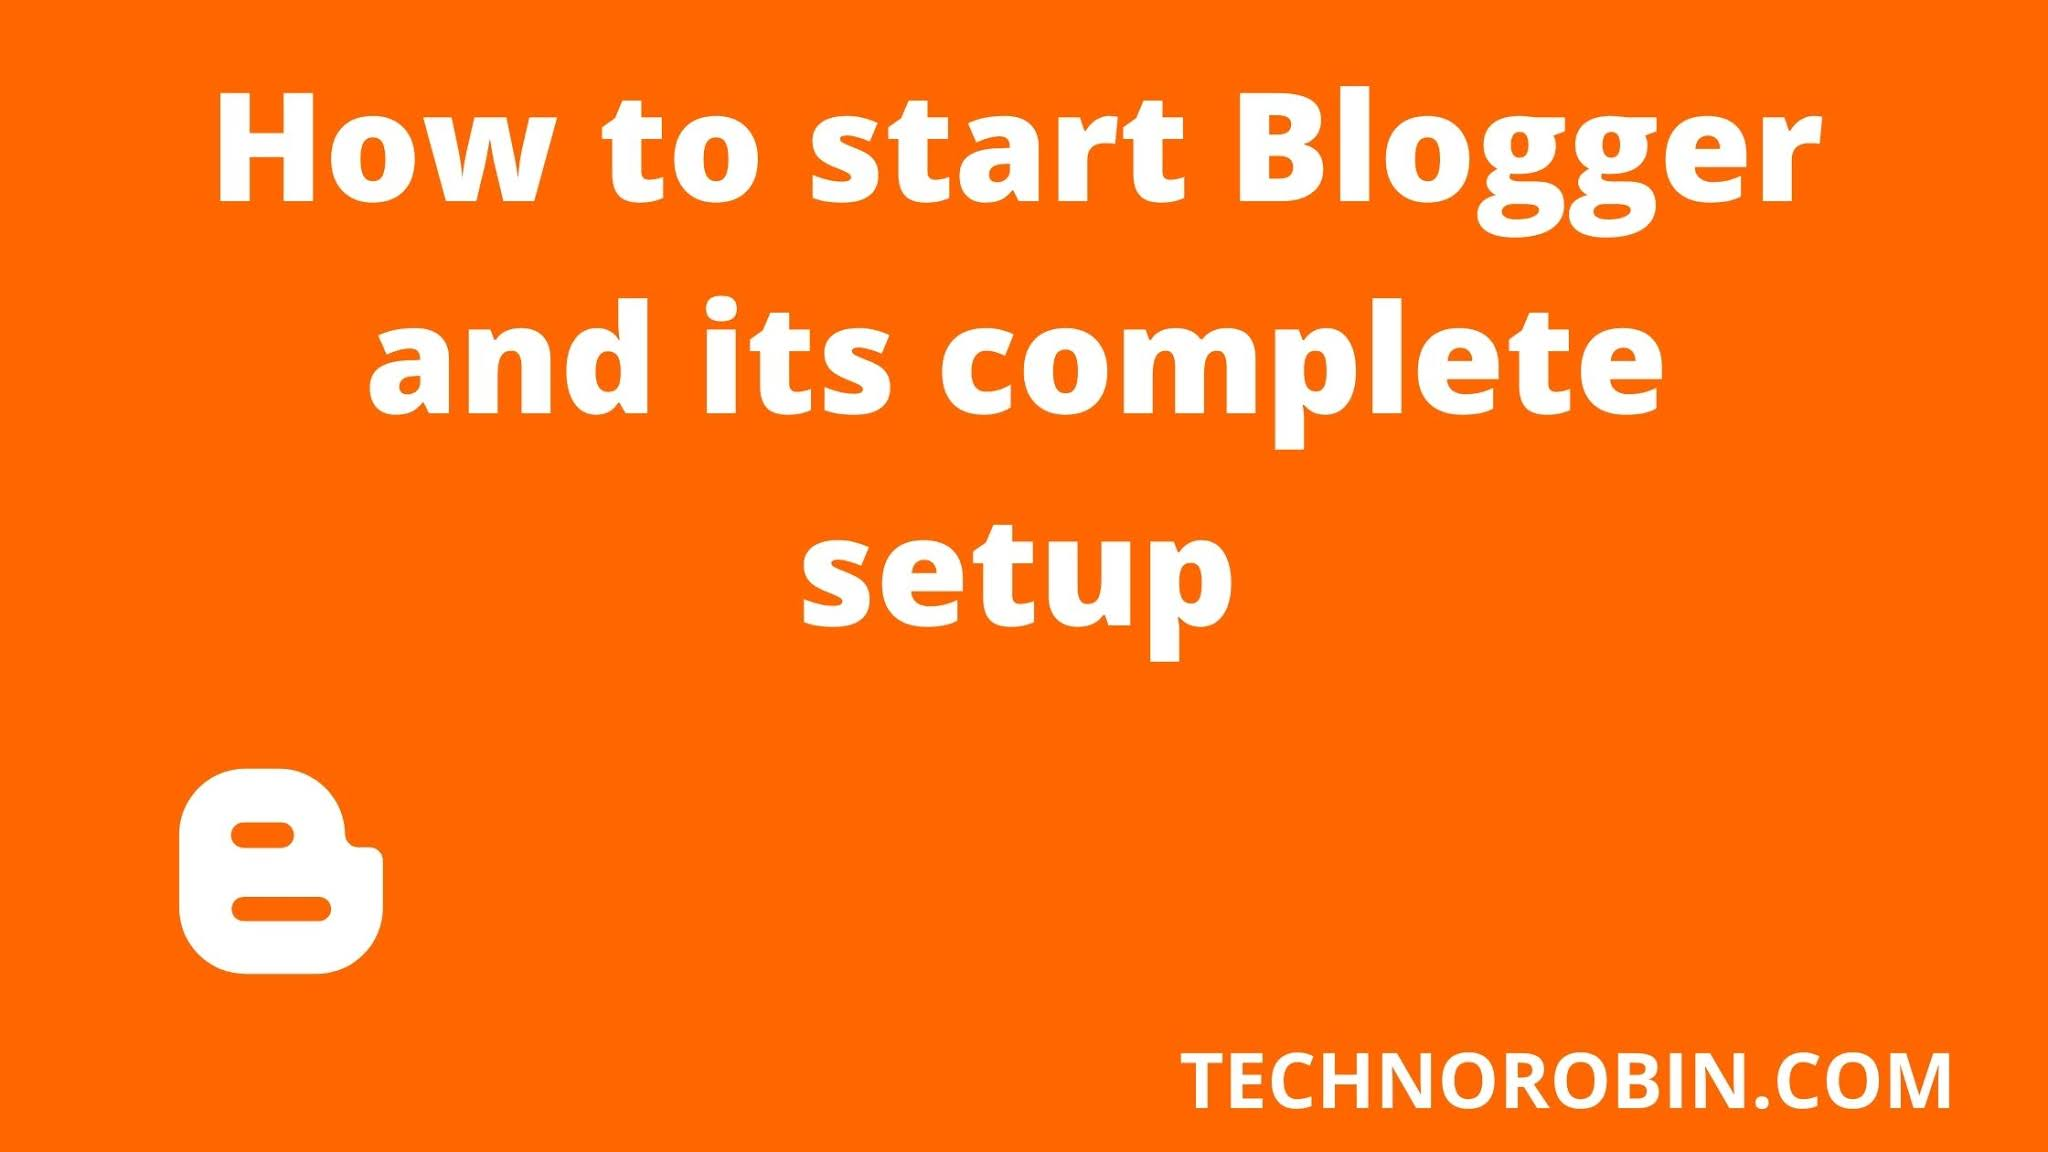 How to start Blogger and its complete setup: